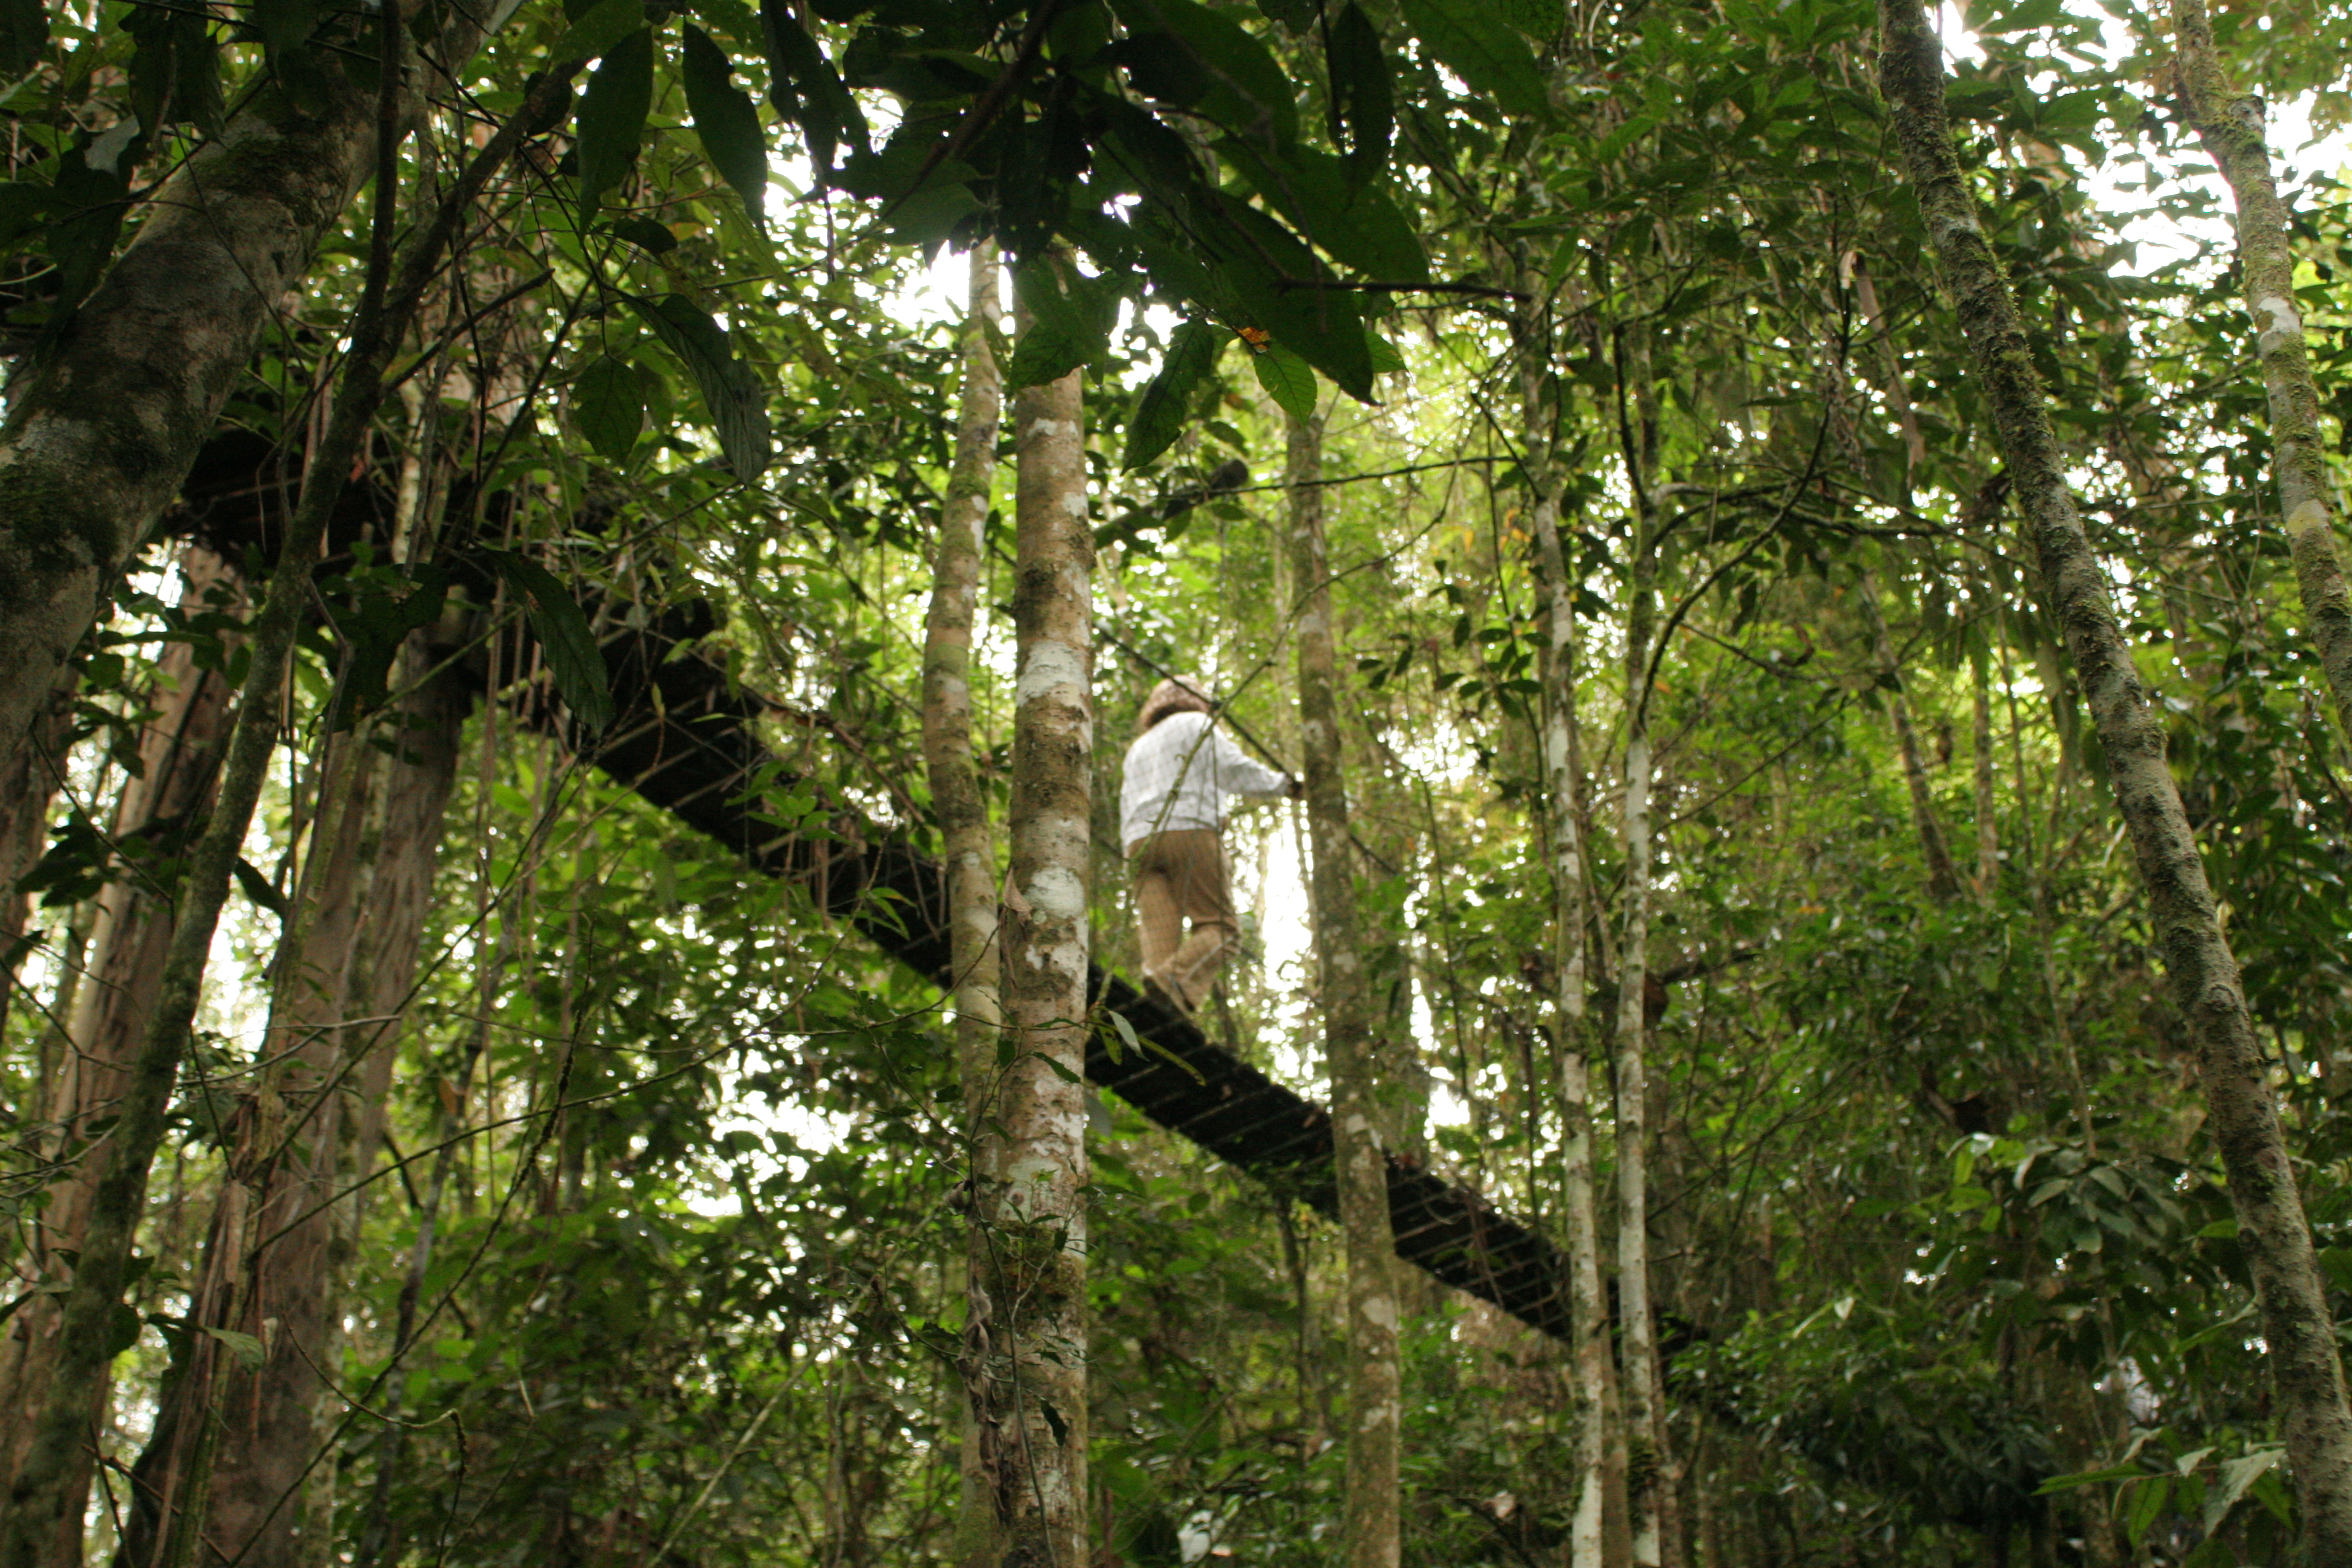 Second Regional Dialogue on Forests and Biodiversity Conservation in Brazil